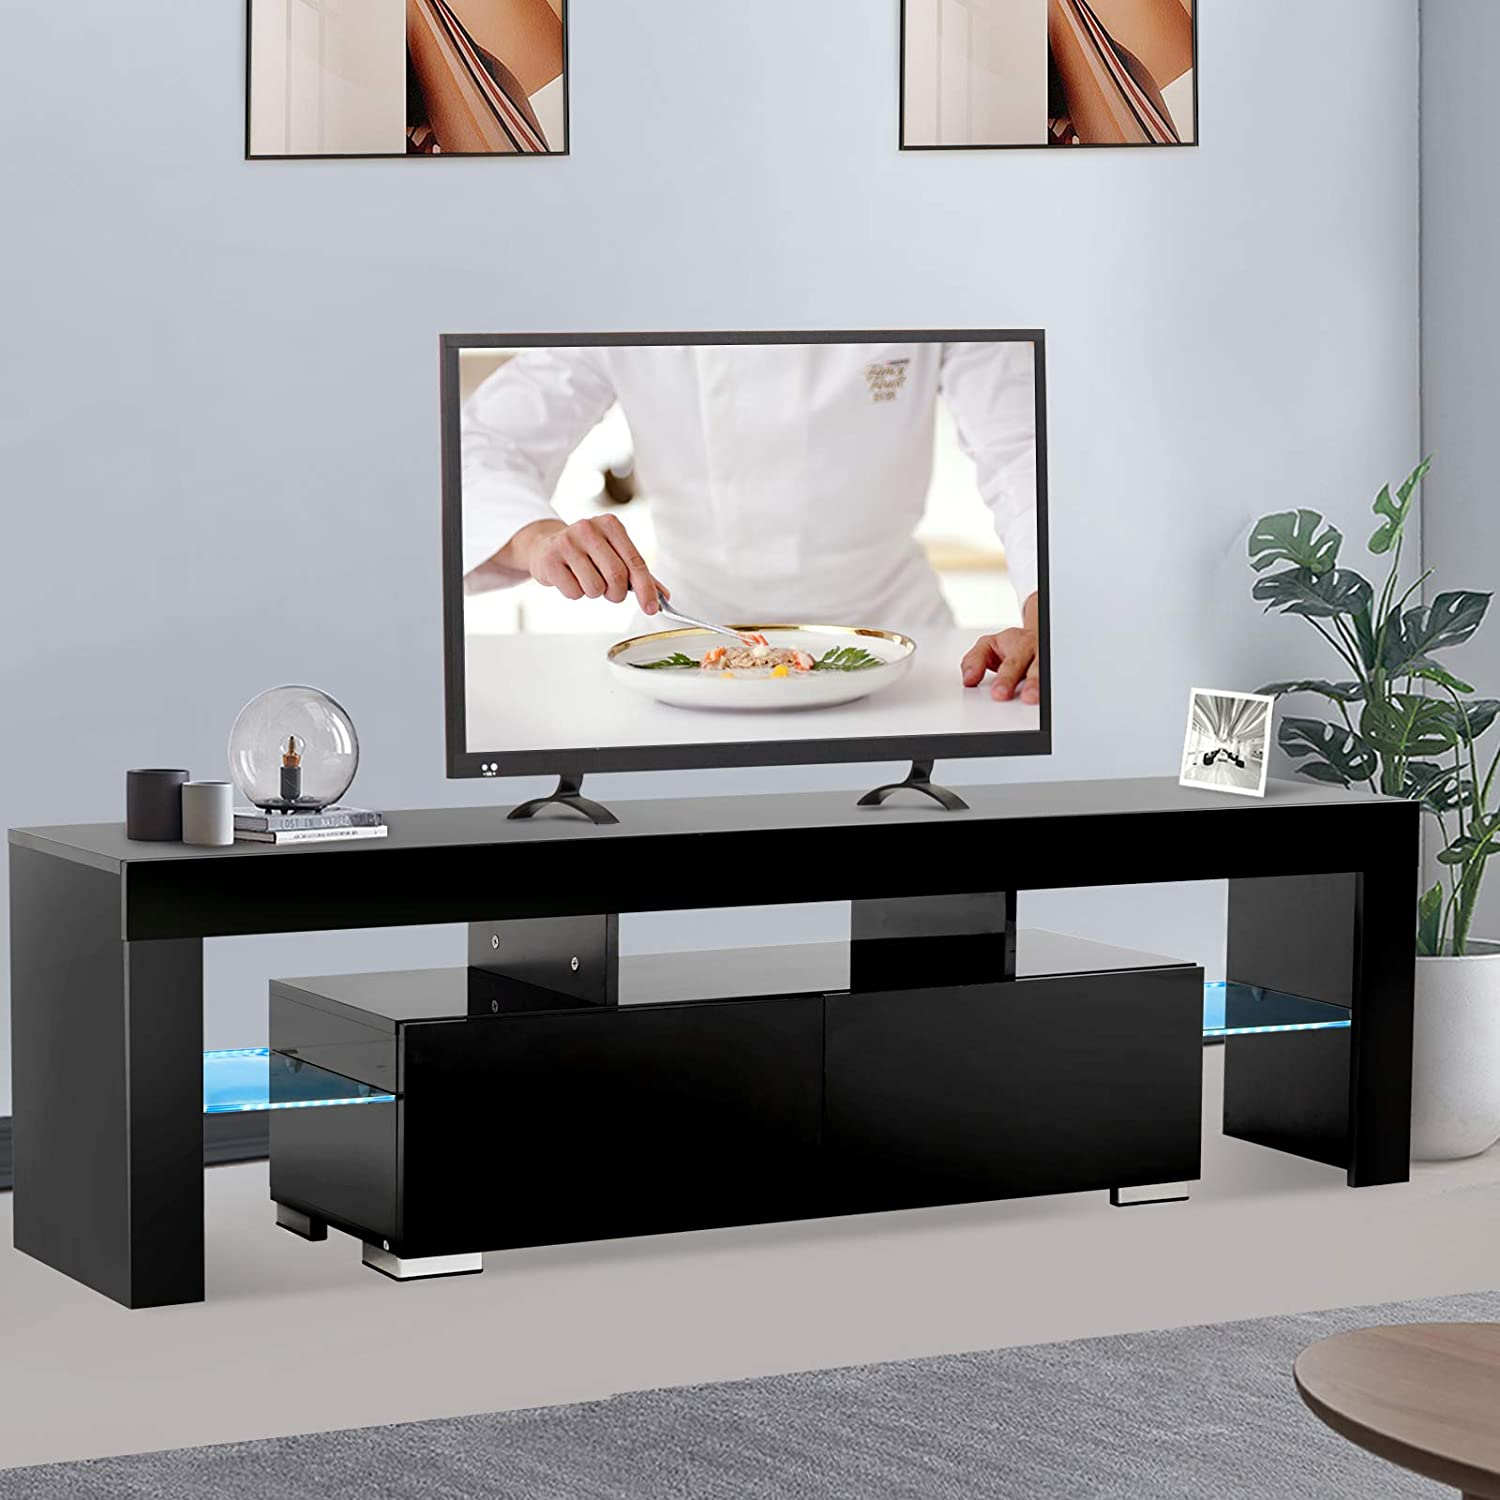 Mecor Modern Black TV Stand with Lights LED TV Stand with Storage and 2 Drawers.High Gloss TV Stand for 65 Inch TV Living Room Furniture